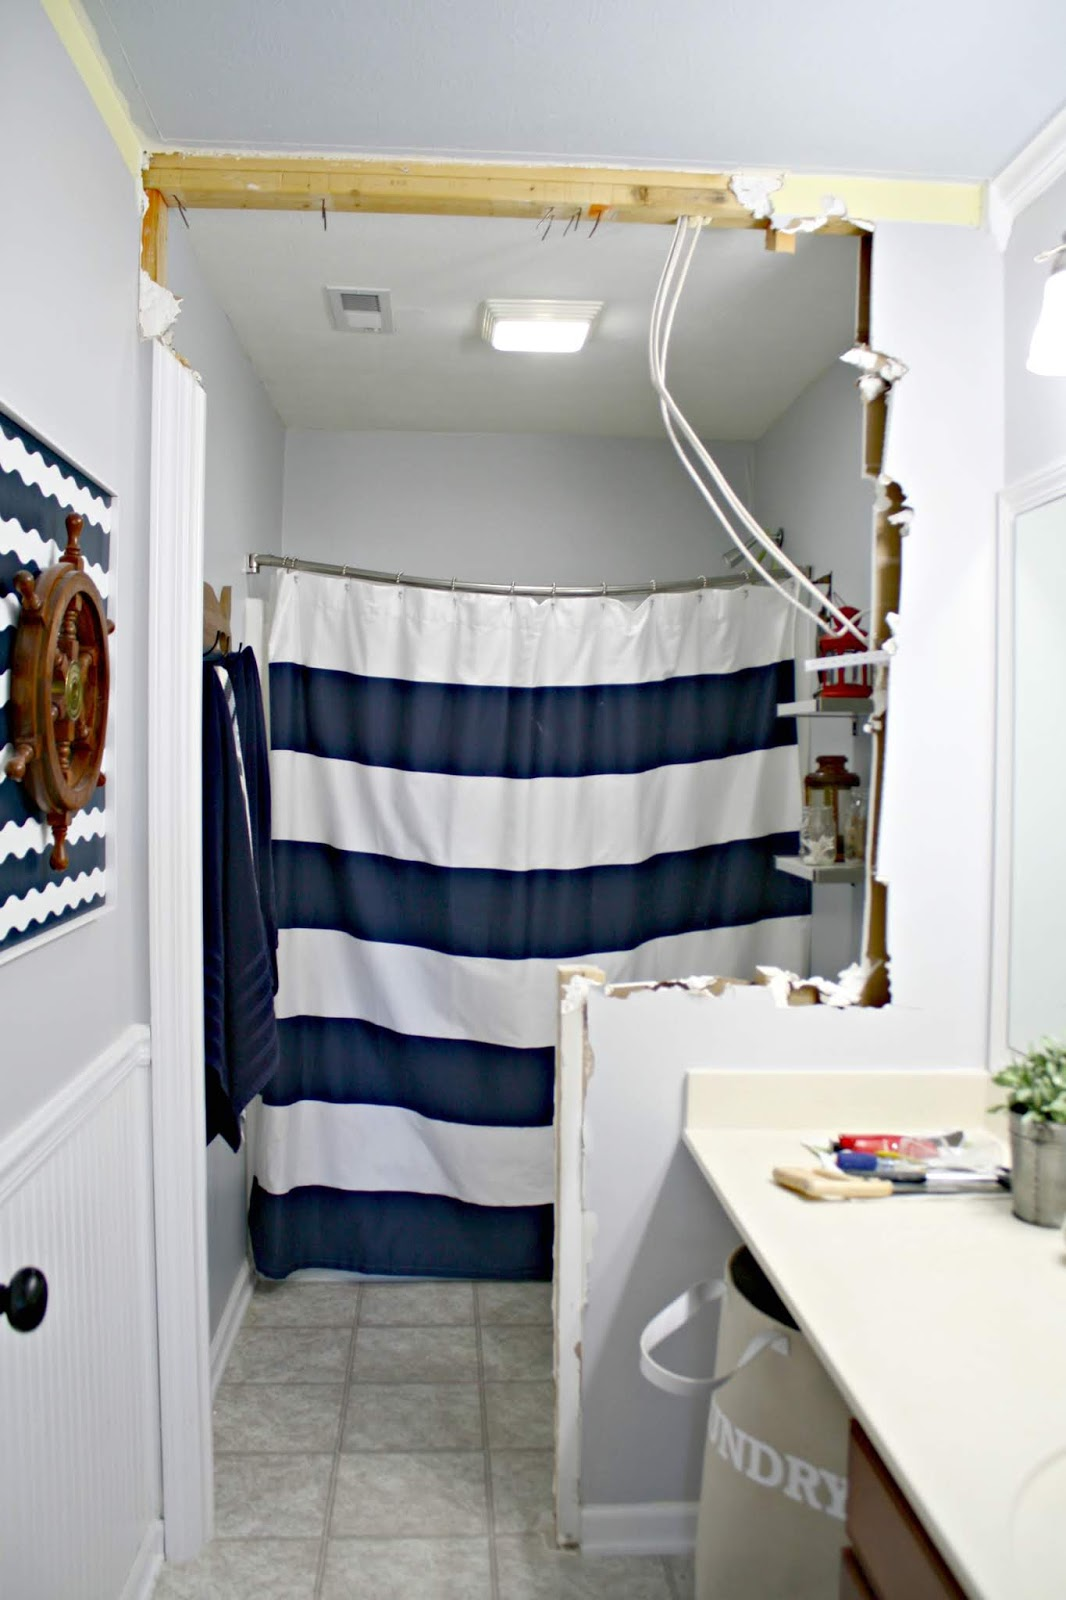 Raise up the shower curtain to make bathroom feel taller